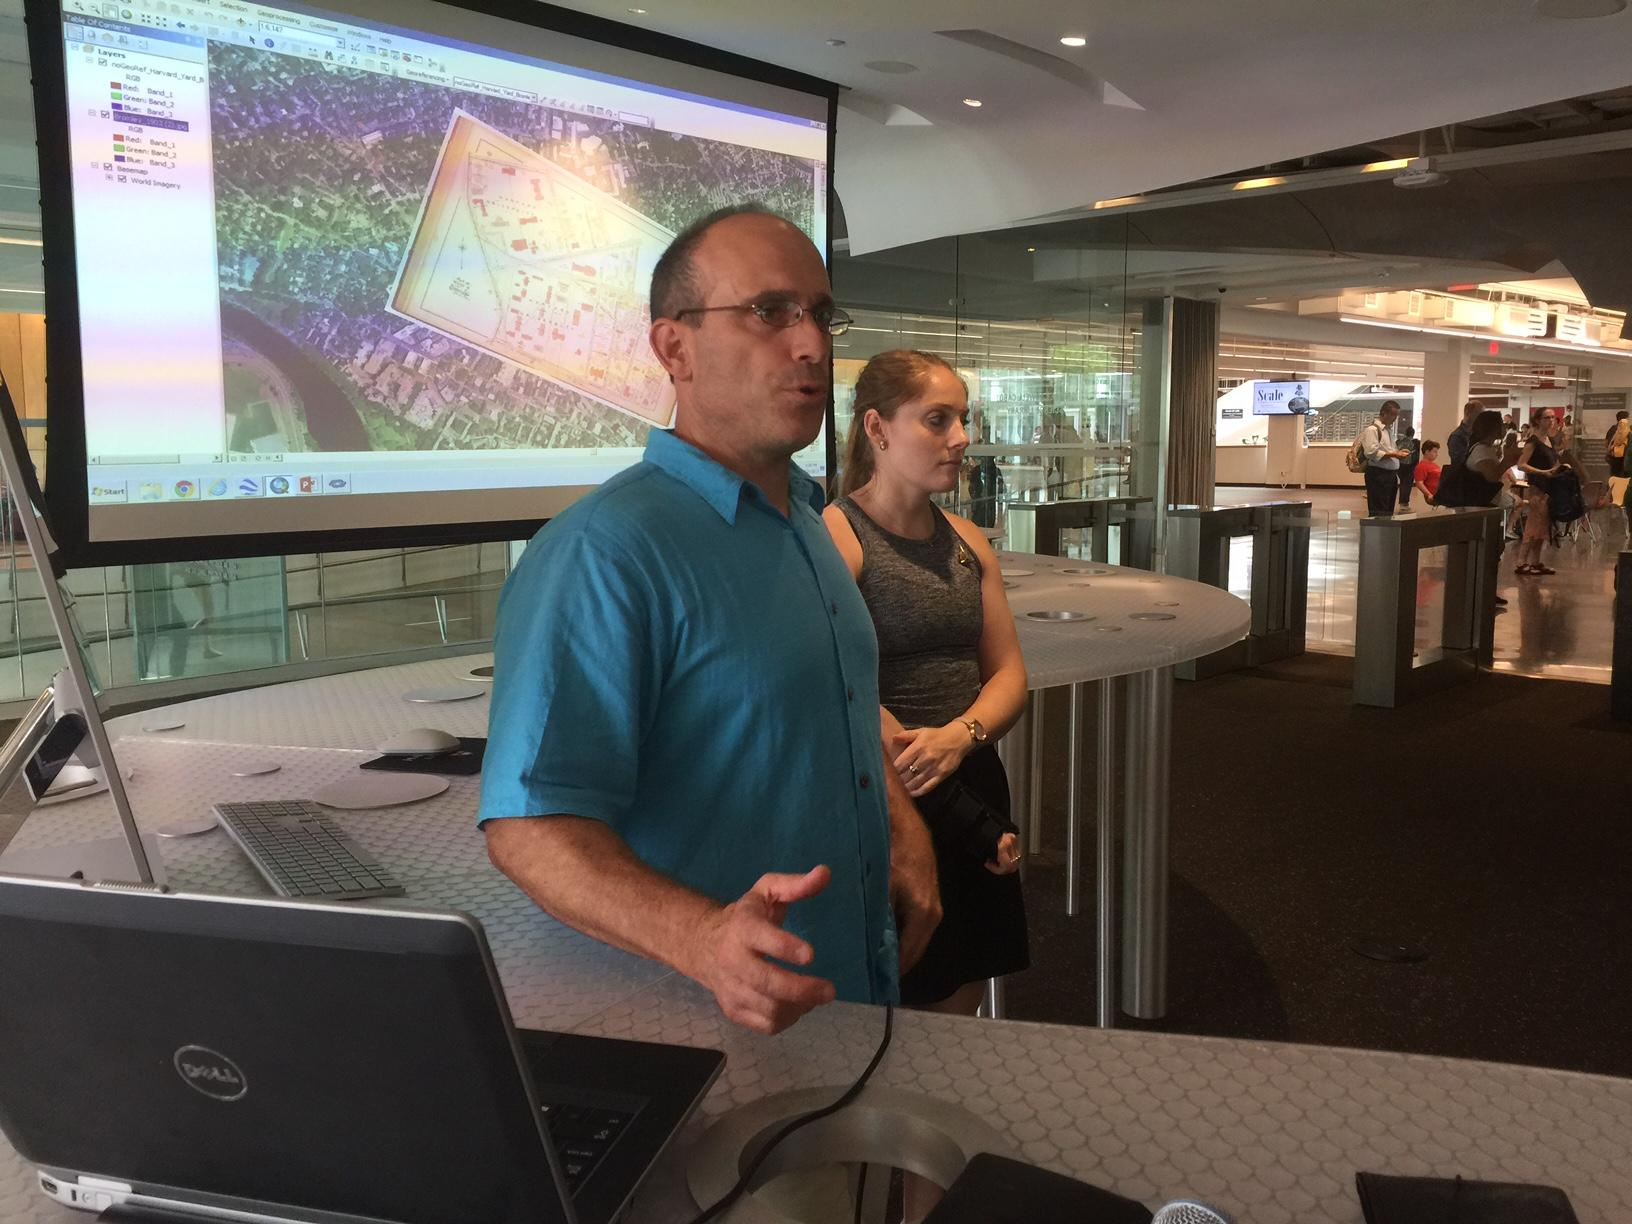 Scott Walker, Digital Cartography Specialist, and Danielle Brown, Geospatial Data Technical Assistant presenting image